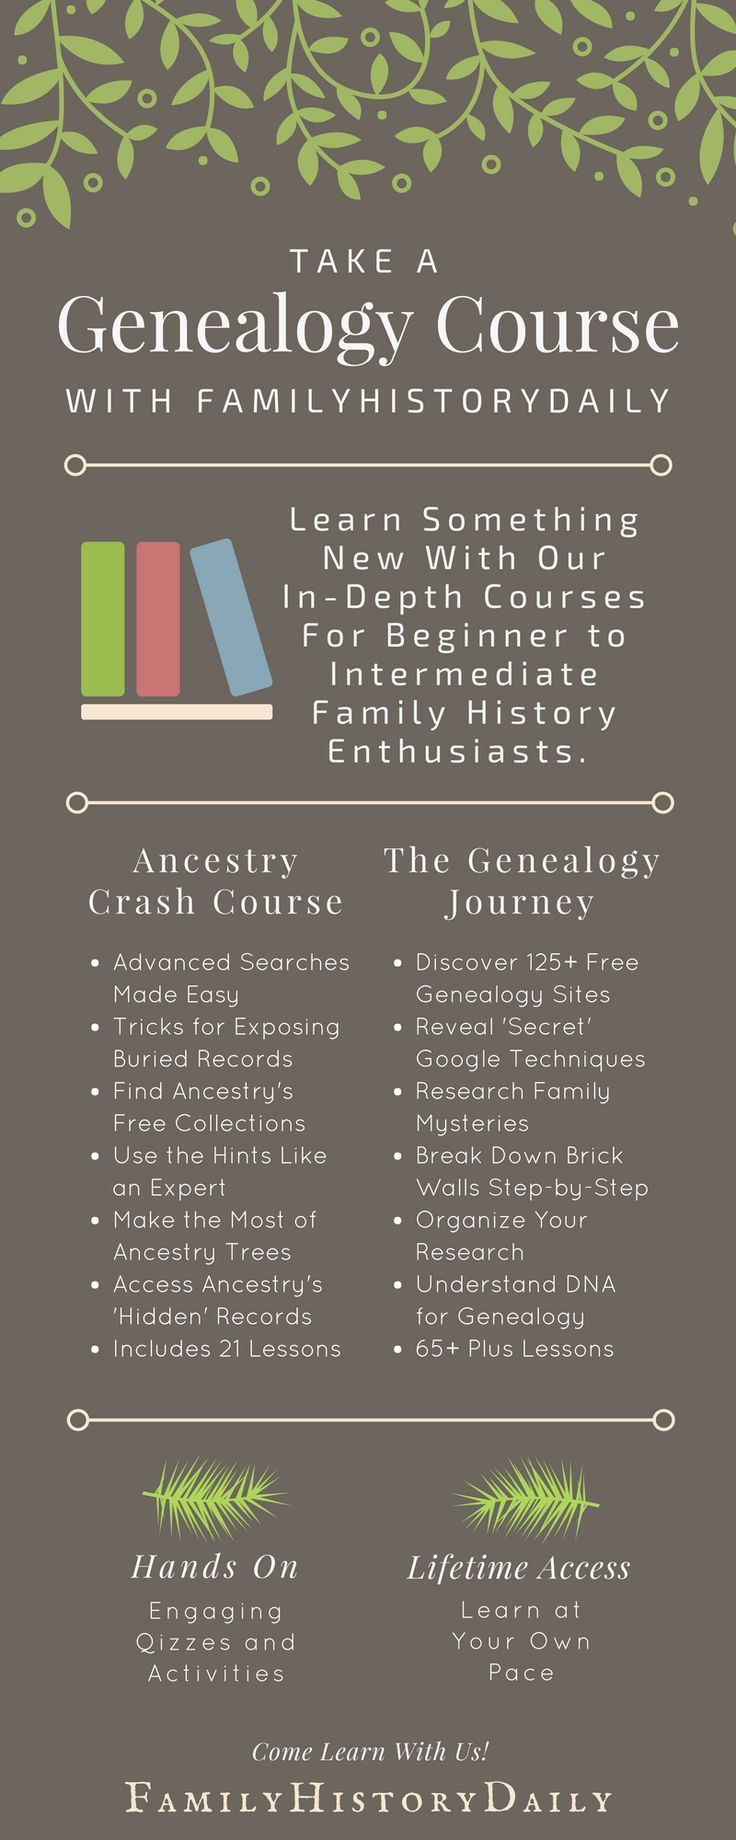 Ready to take your genealogy research to the next level? Want to learn more about genealogy organization? Or how about ancestry DNA tests? An exciting genealogy course is the place to start learning something new about family history research today! #genealogyresearch #familytree